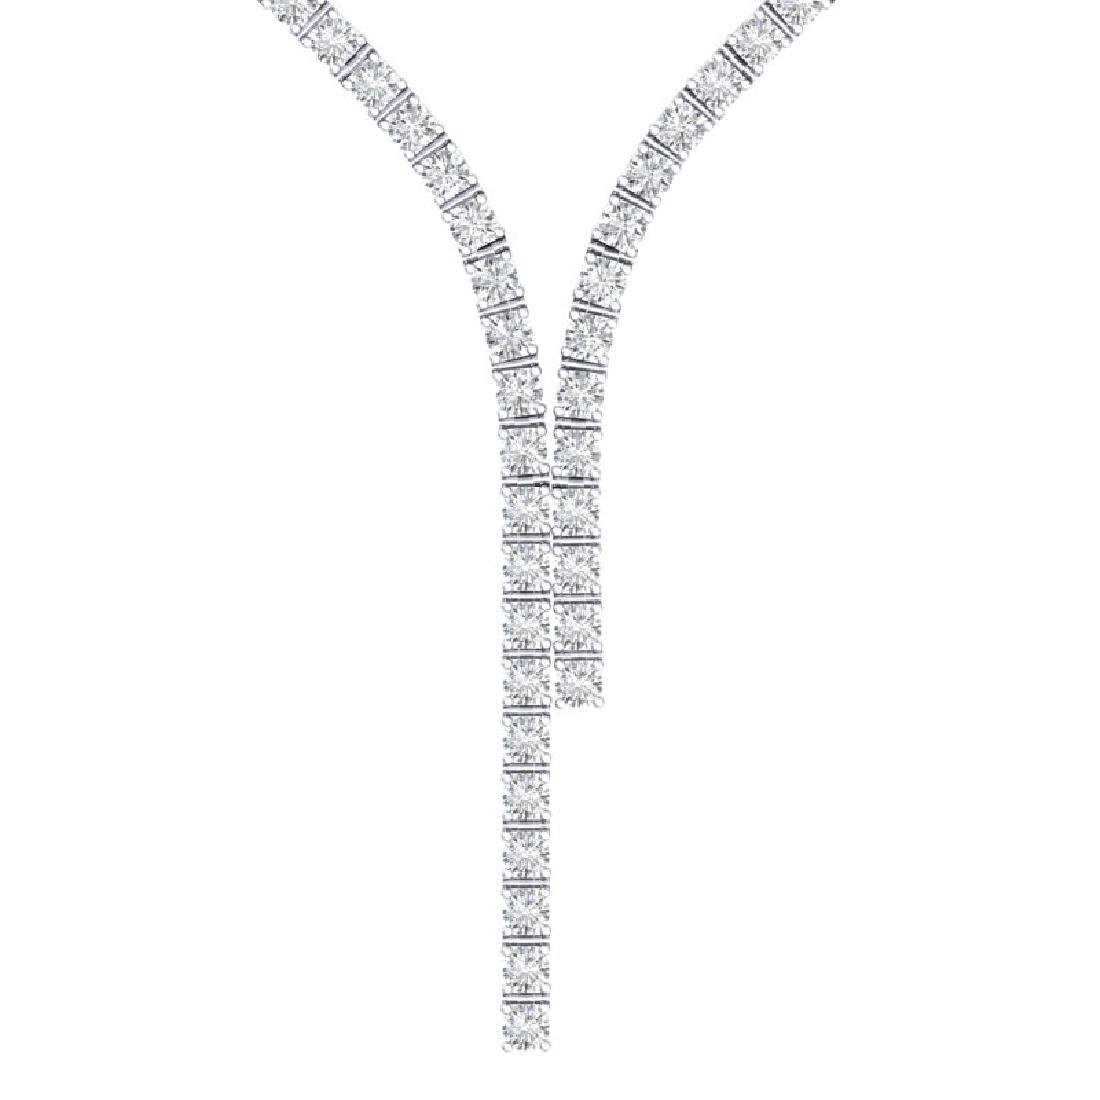 15 CTW Certified SI/I Diamond Necklace 18K White Gold